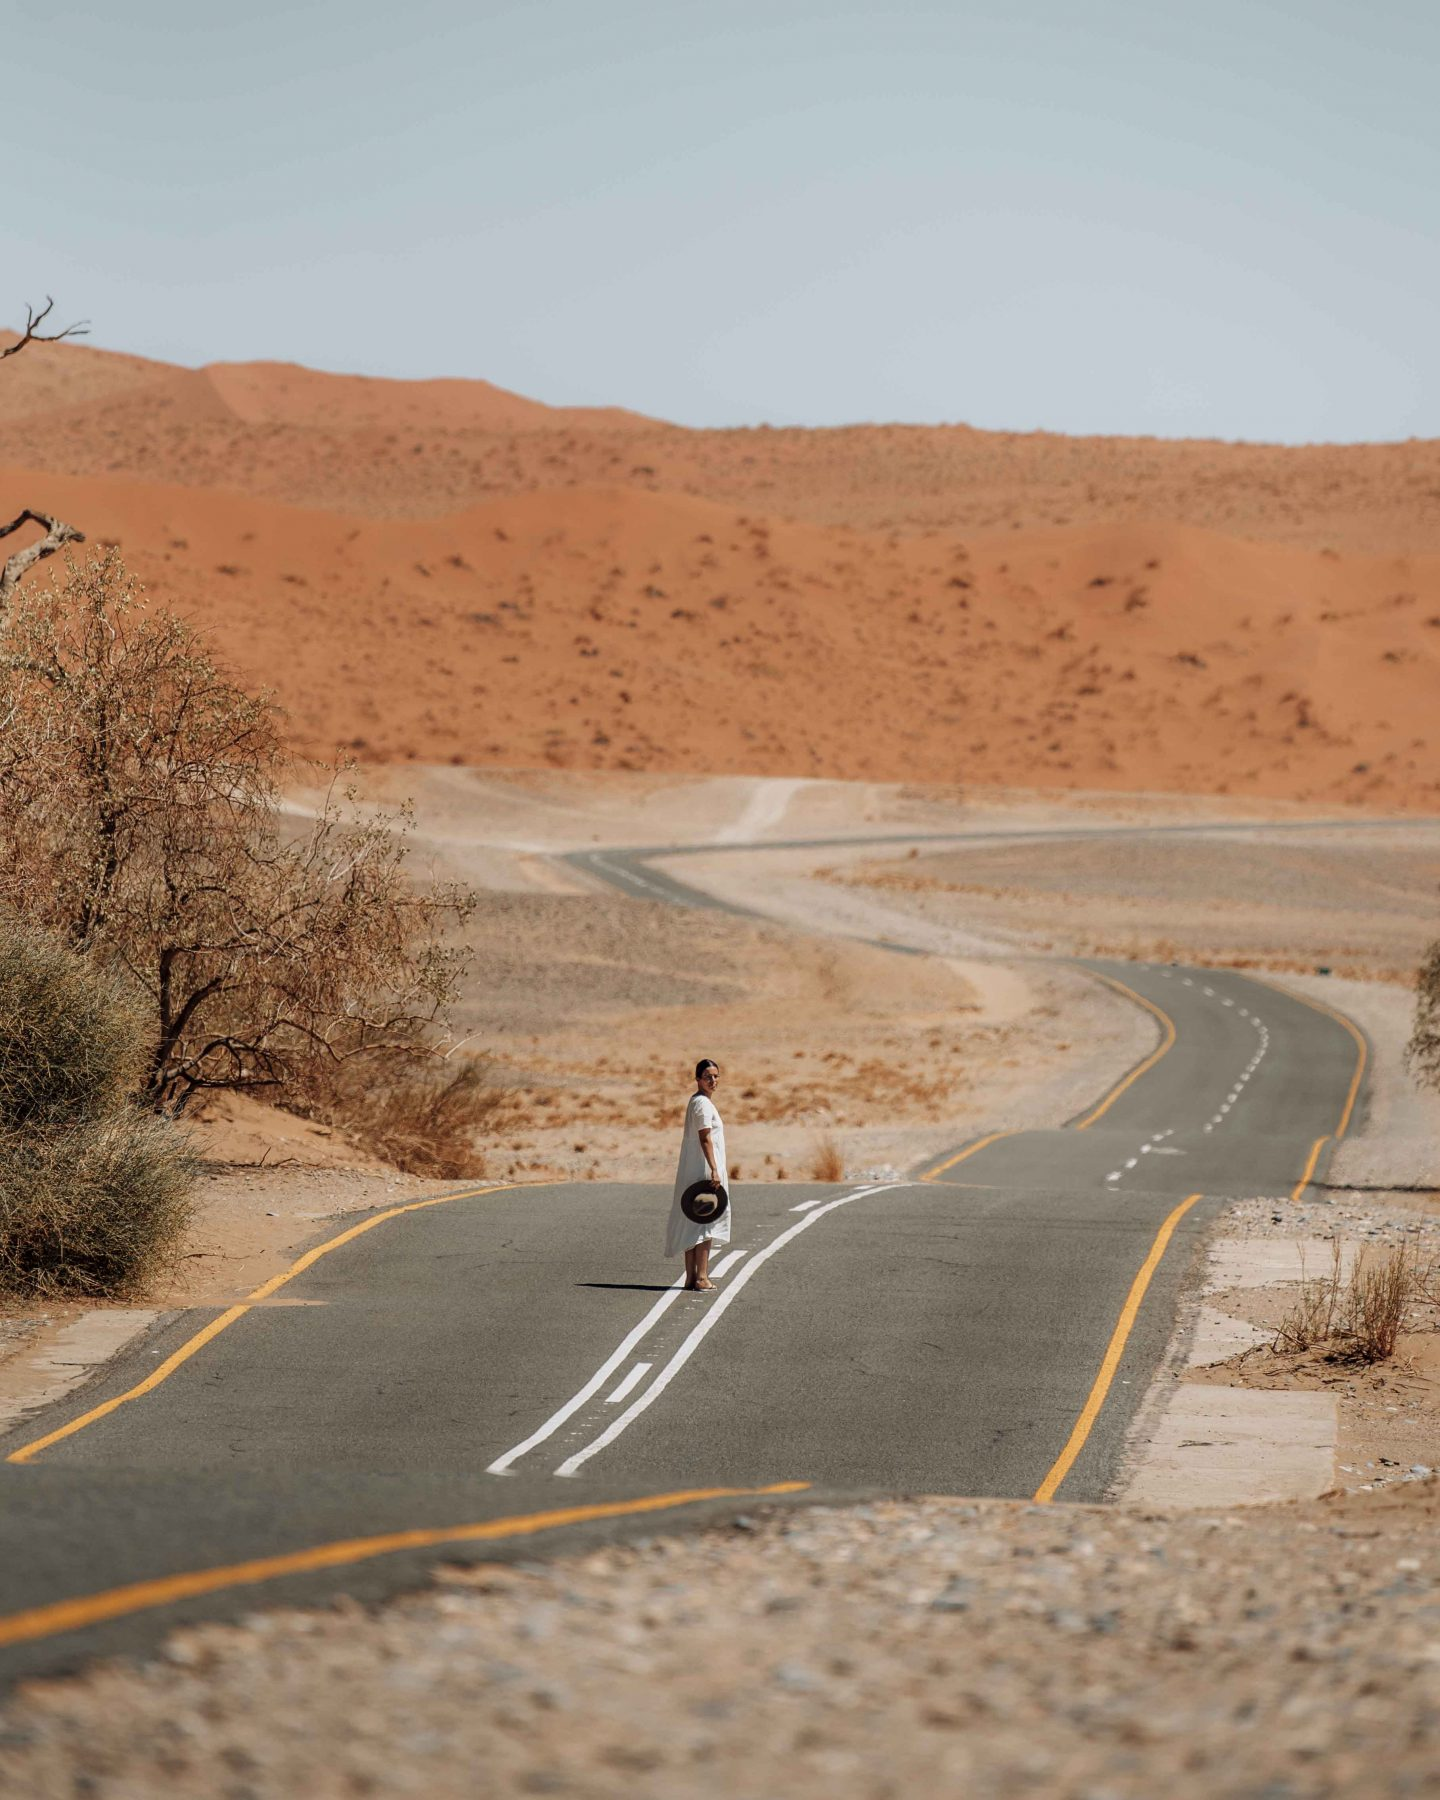 The epic views on a road trip in Namibia